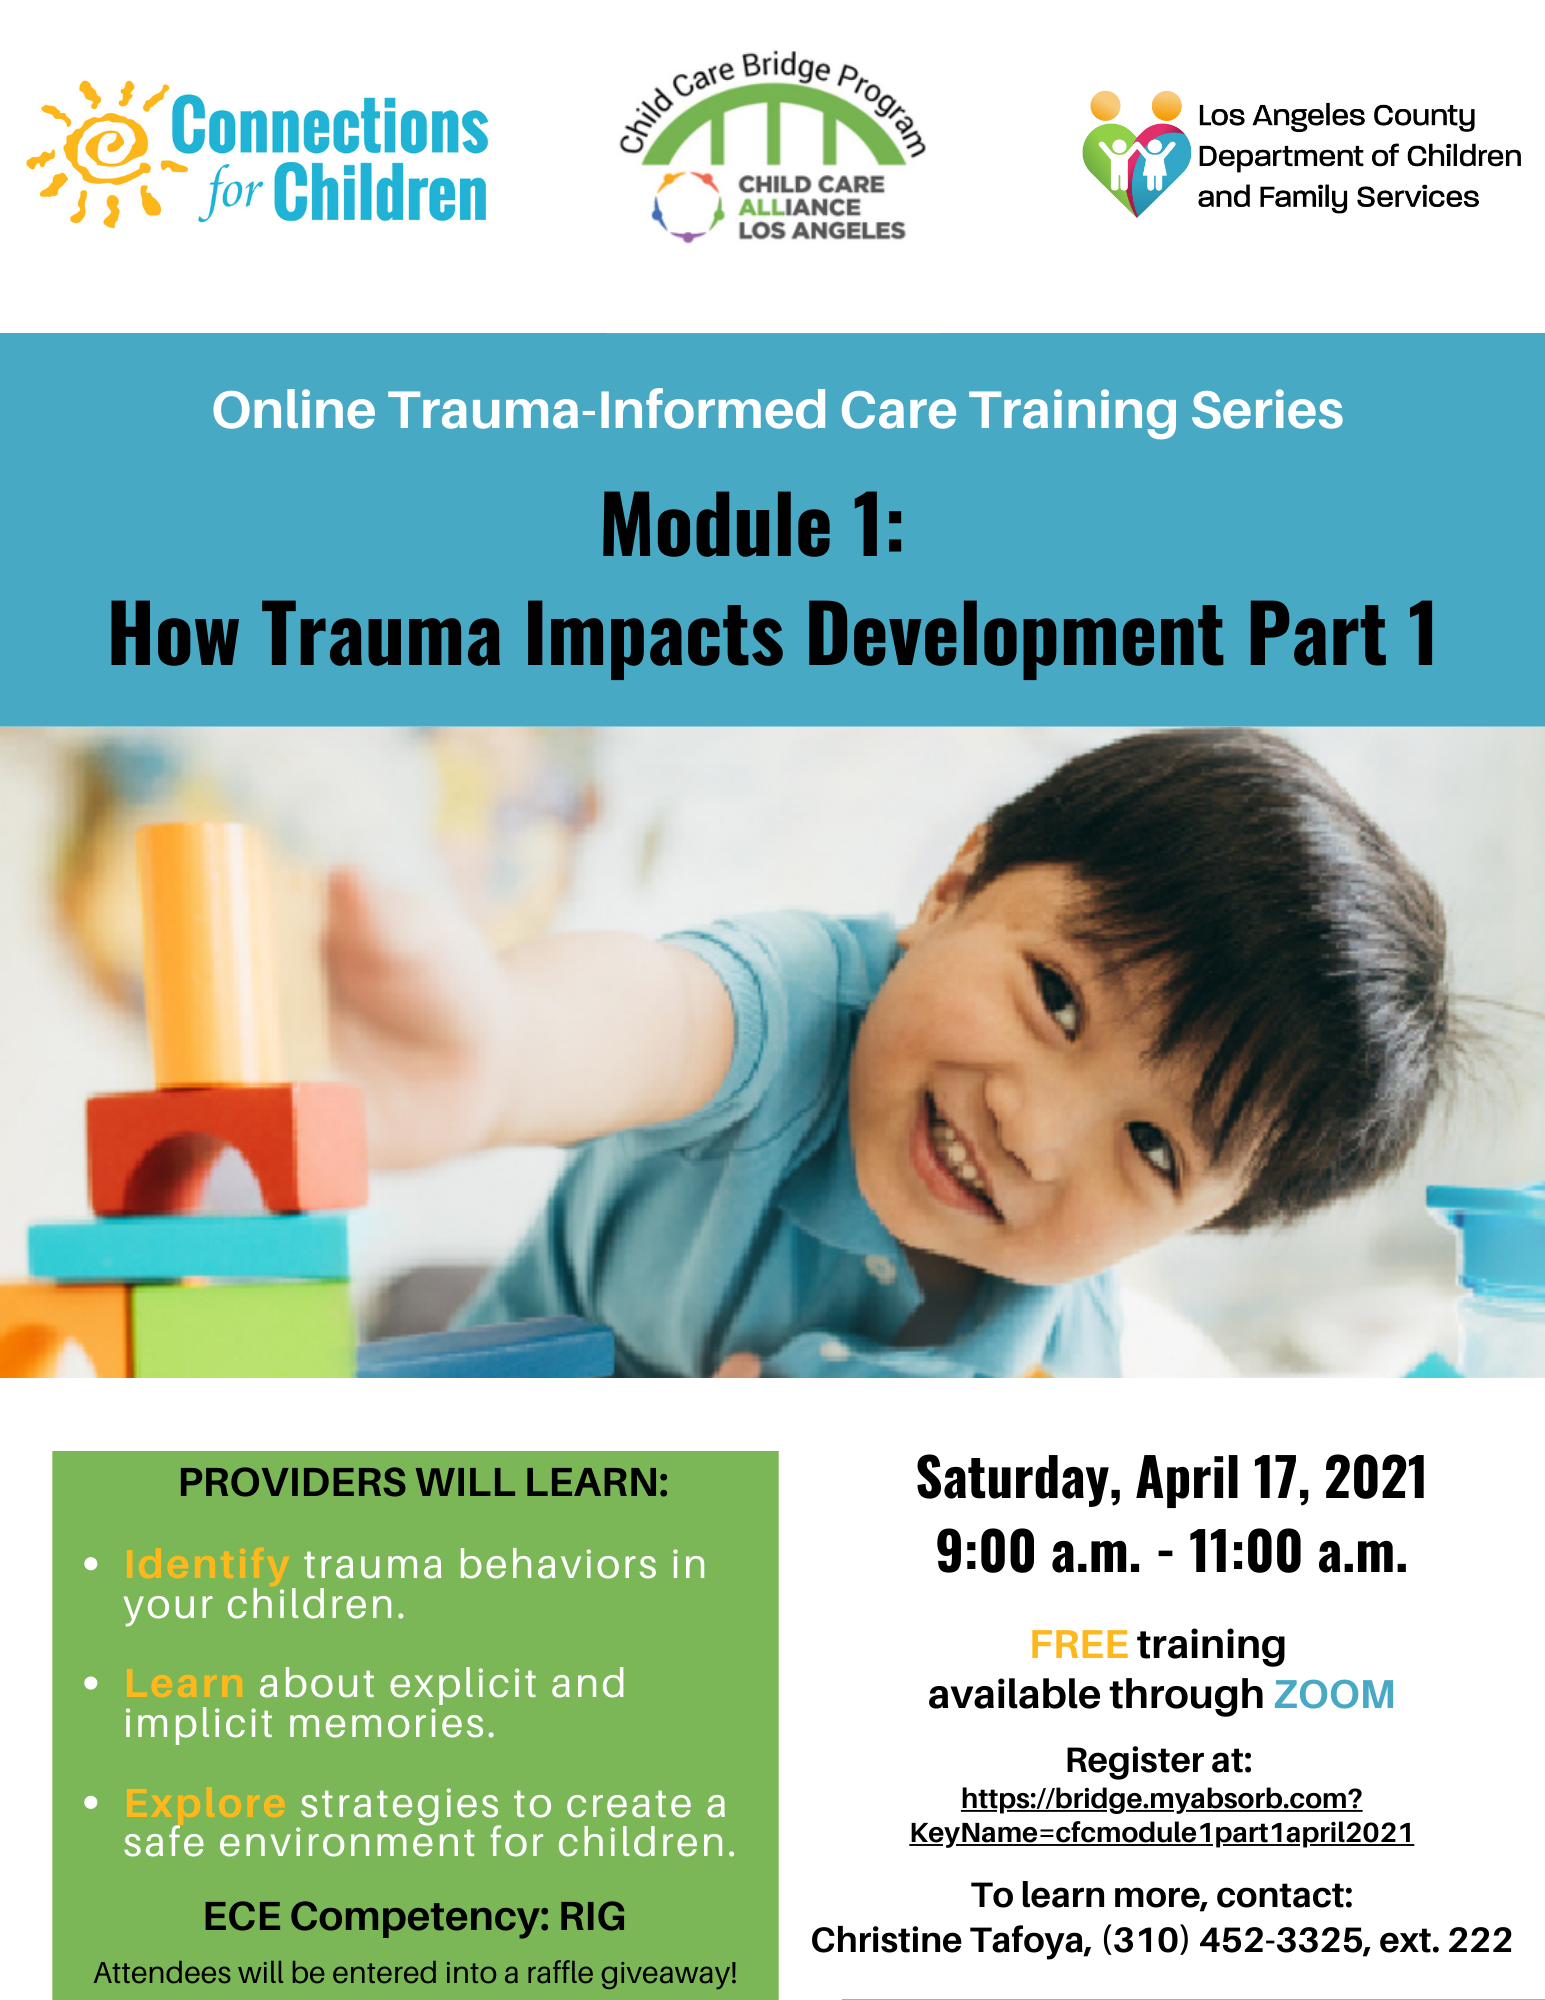 How Trauma Impacts Development, Part 1